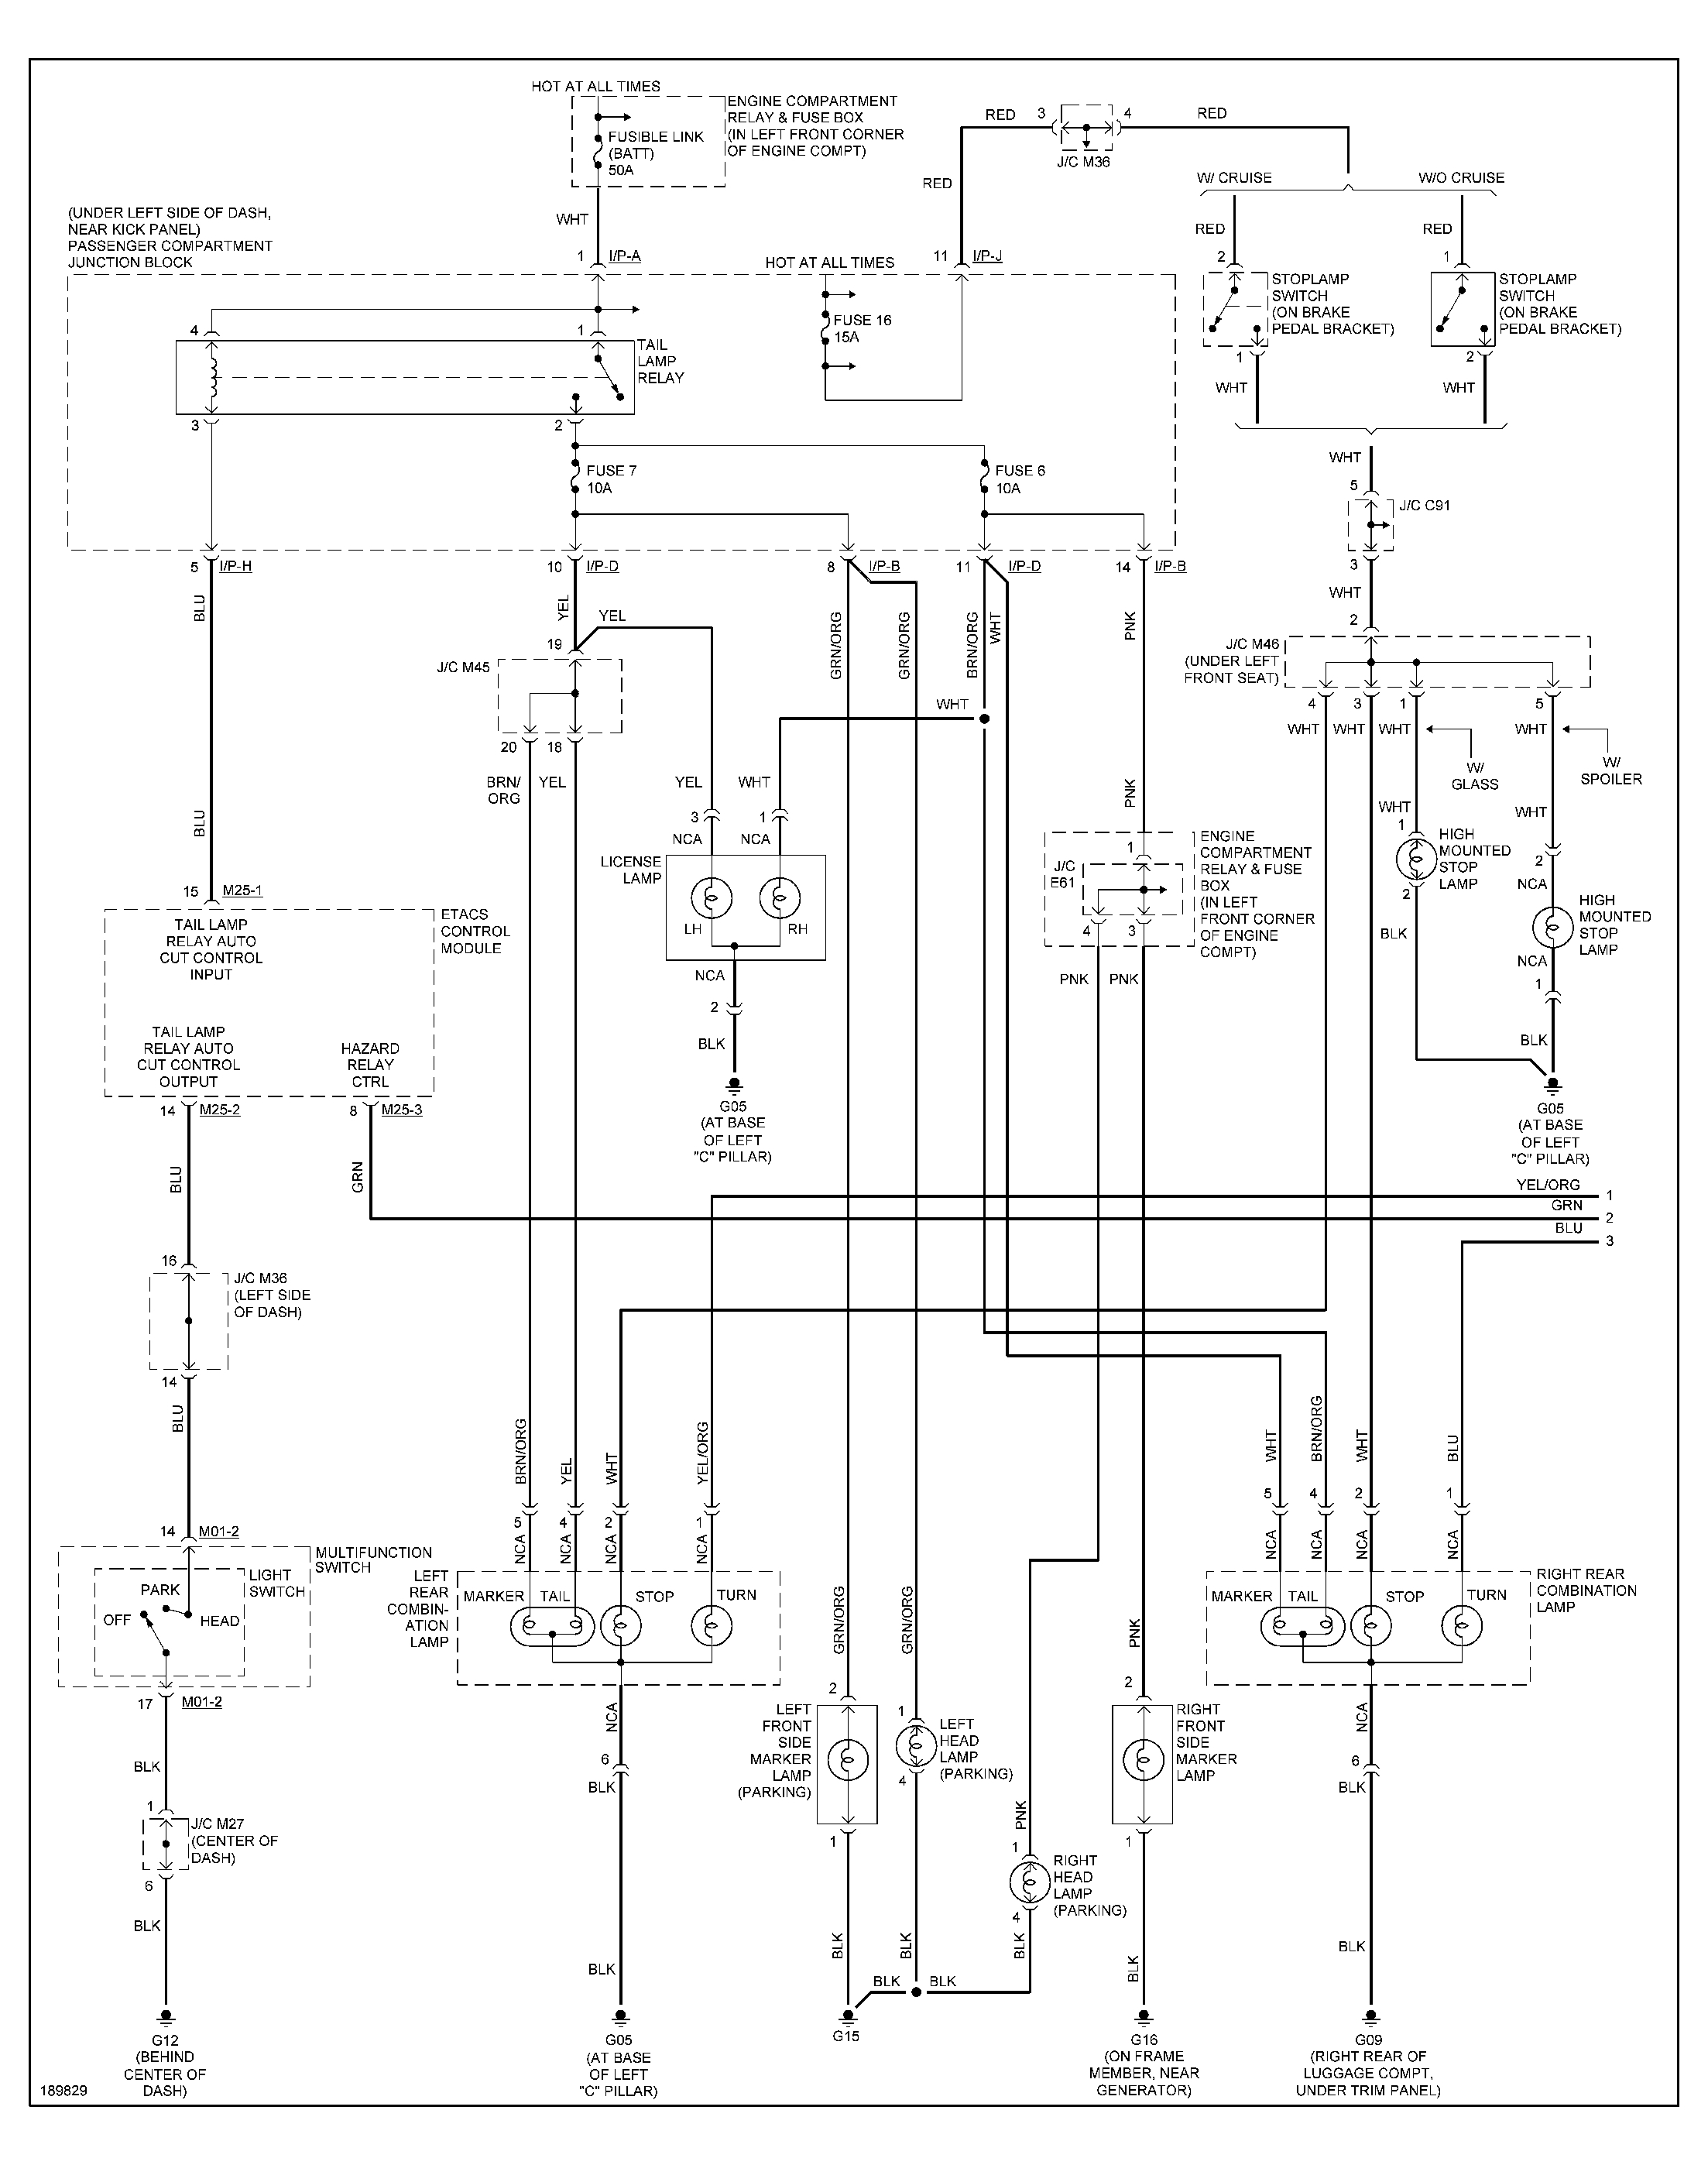 2006 Hyundai Sonata Radio Wiring Diagram Free. 2006 Hyundai Sonata Radio Wiring Diagram Car Tuning Wire Center U2022. Hyundai. 2008 Hyundai Sonata Wiring At Scoala.co